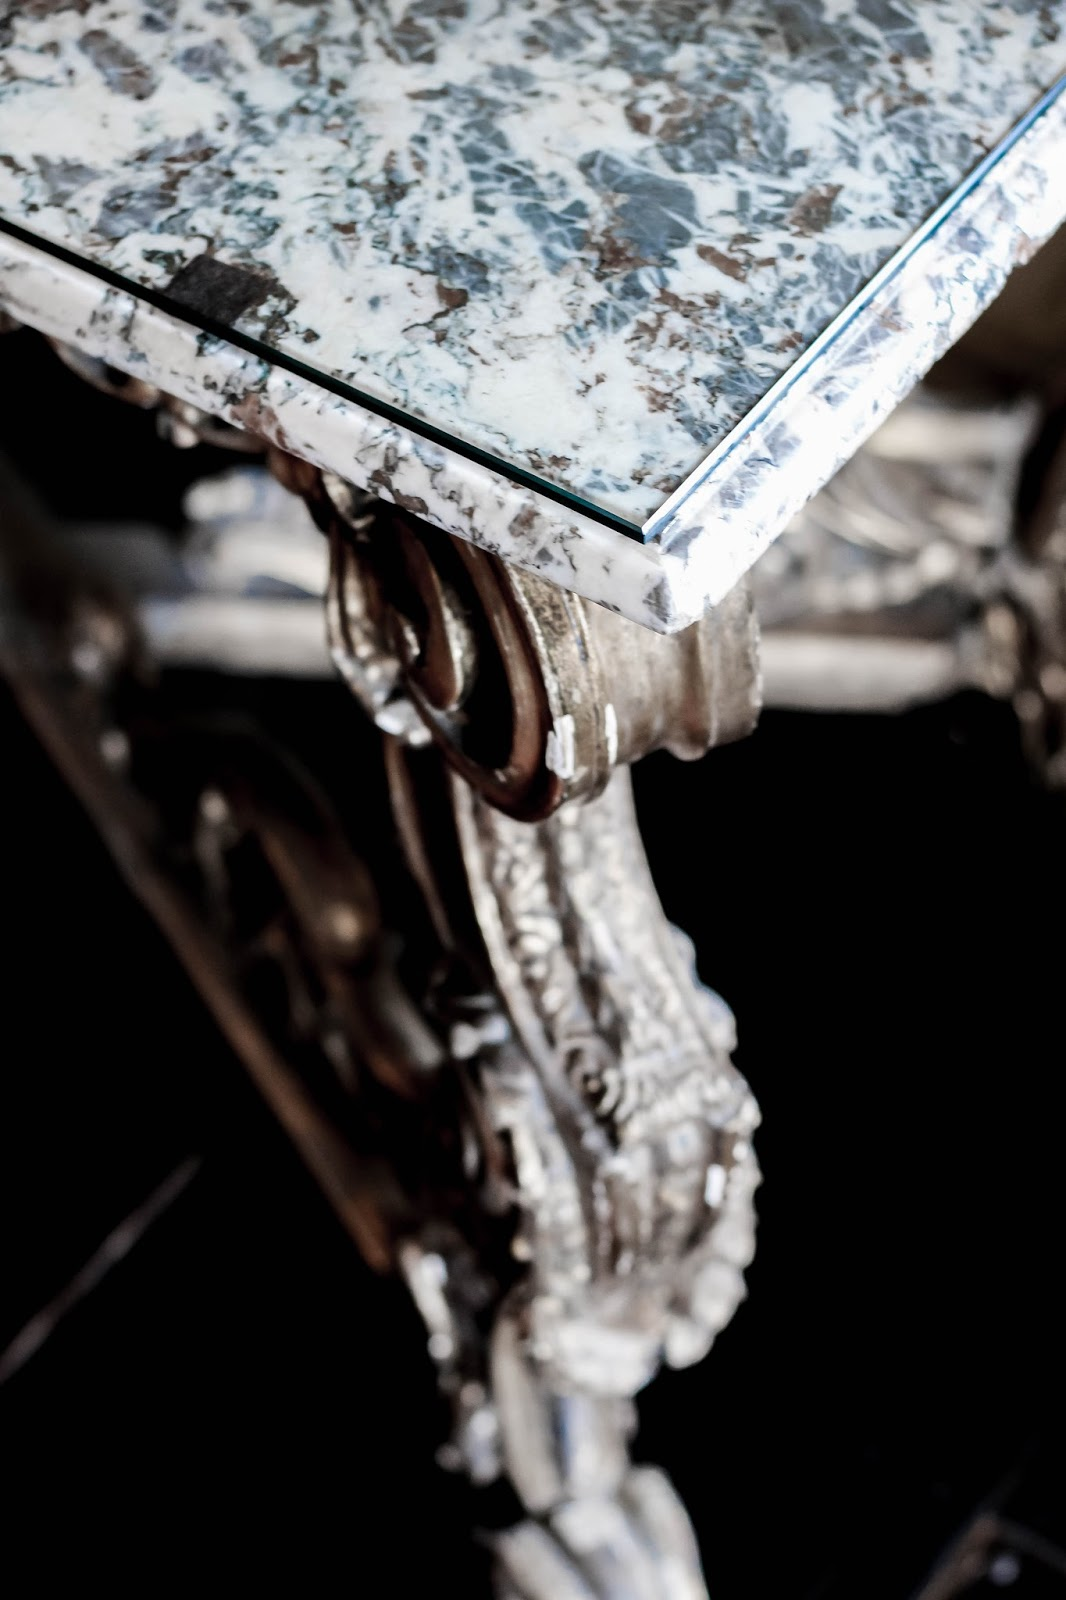 Antique Marble Table With Ornate Gold Legs